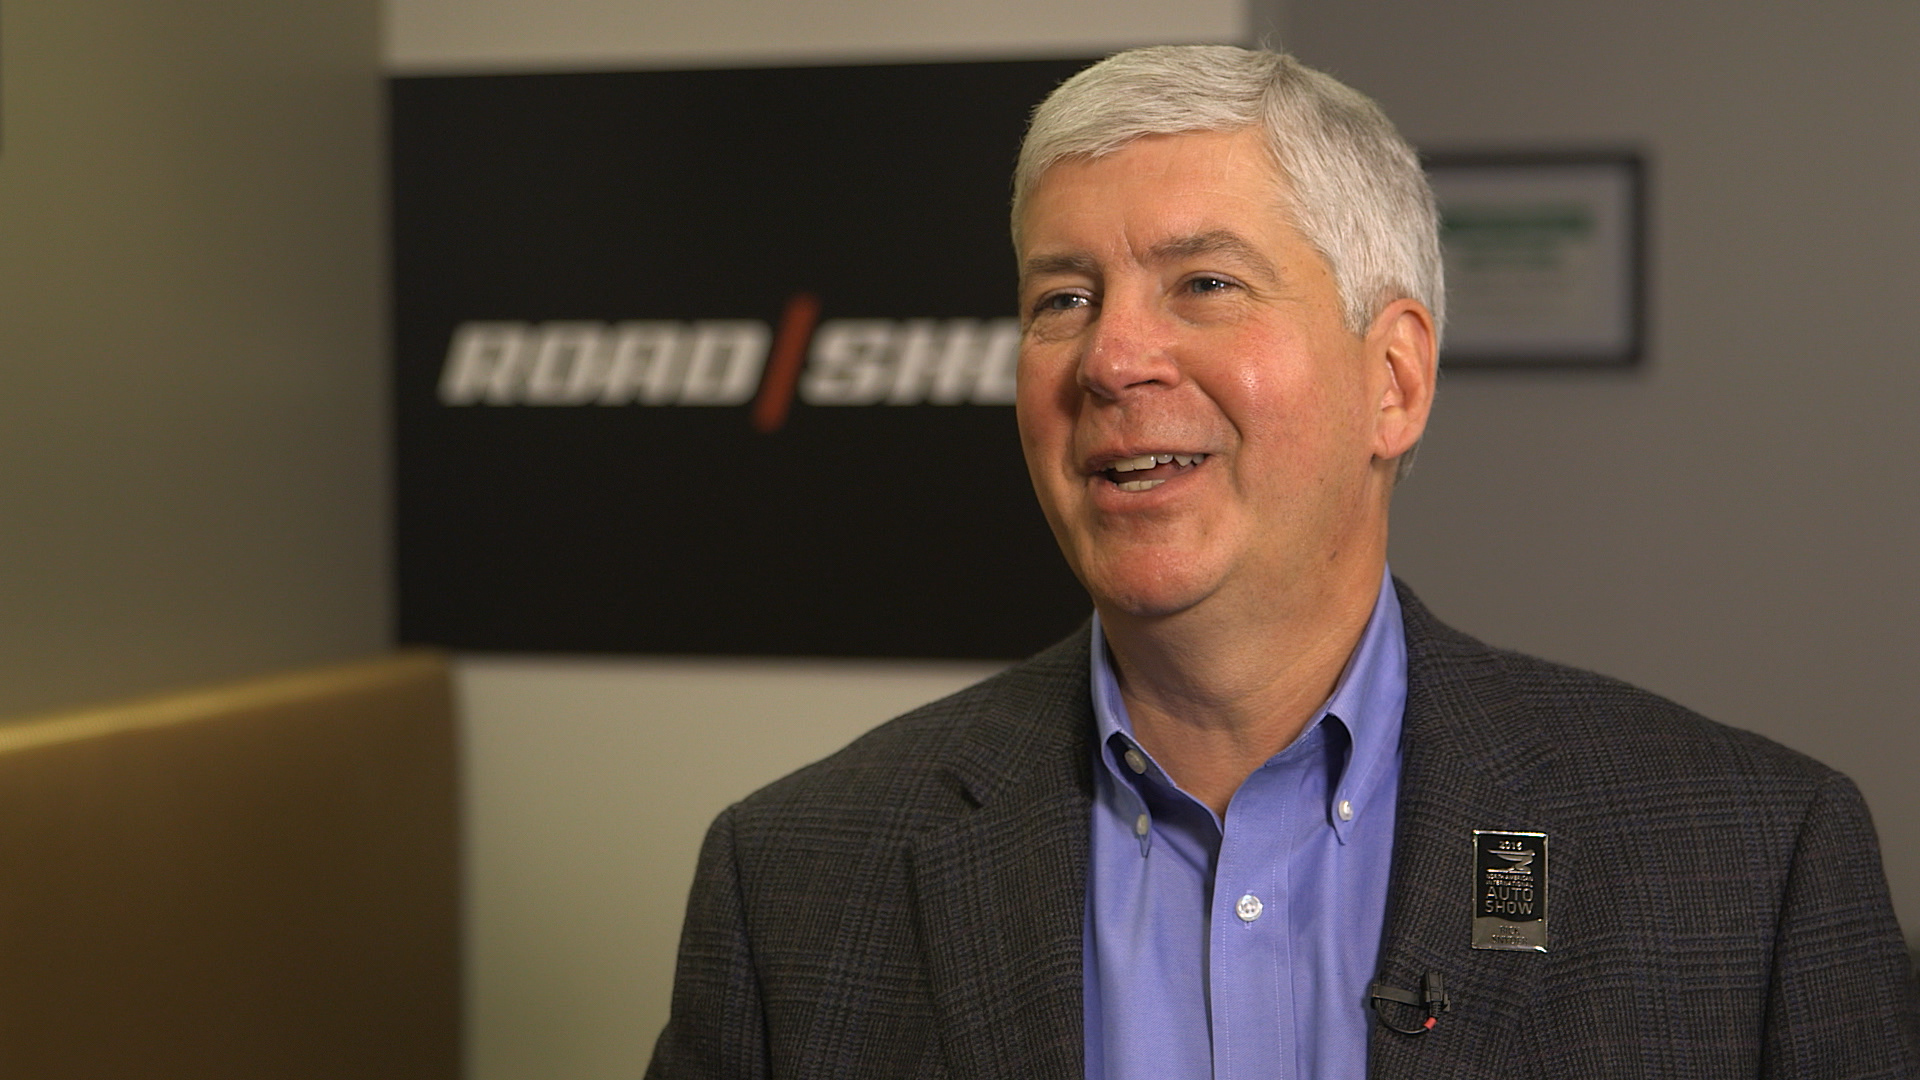 Video: Michigan Gov. Snyder on his effort to bring car tech to the Motor City ​